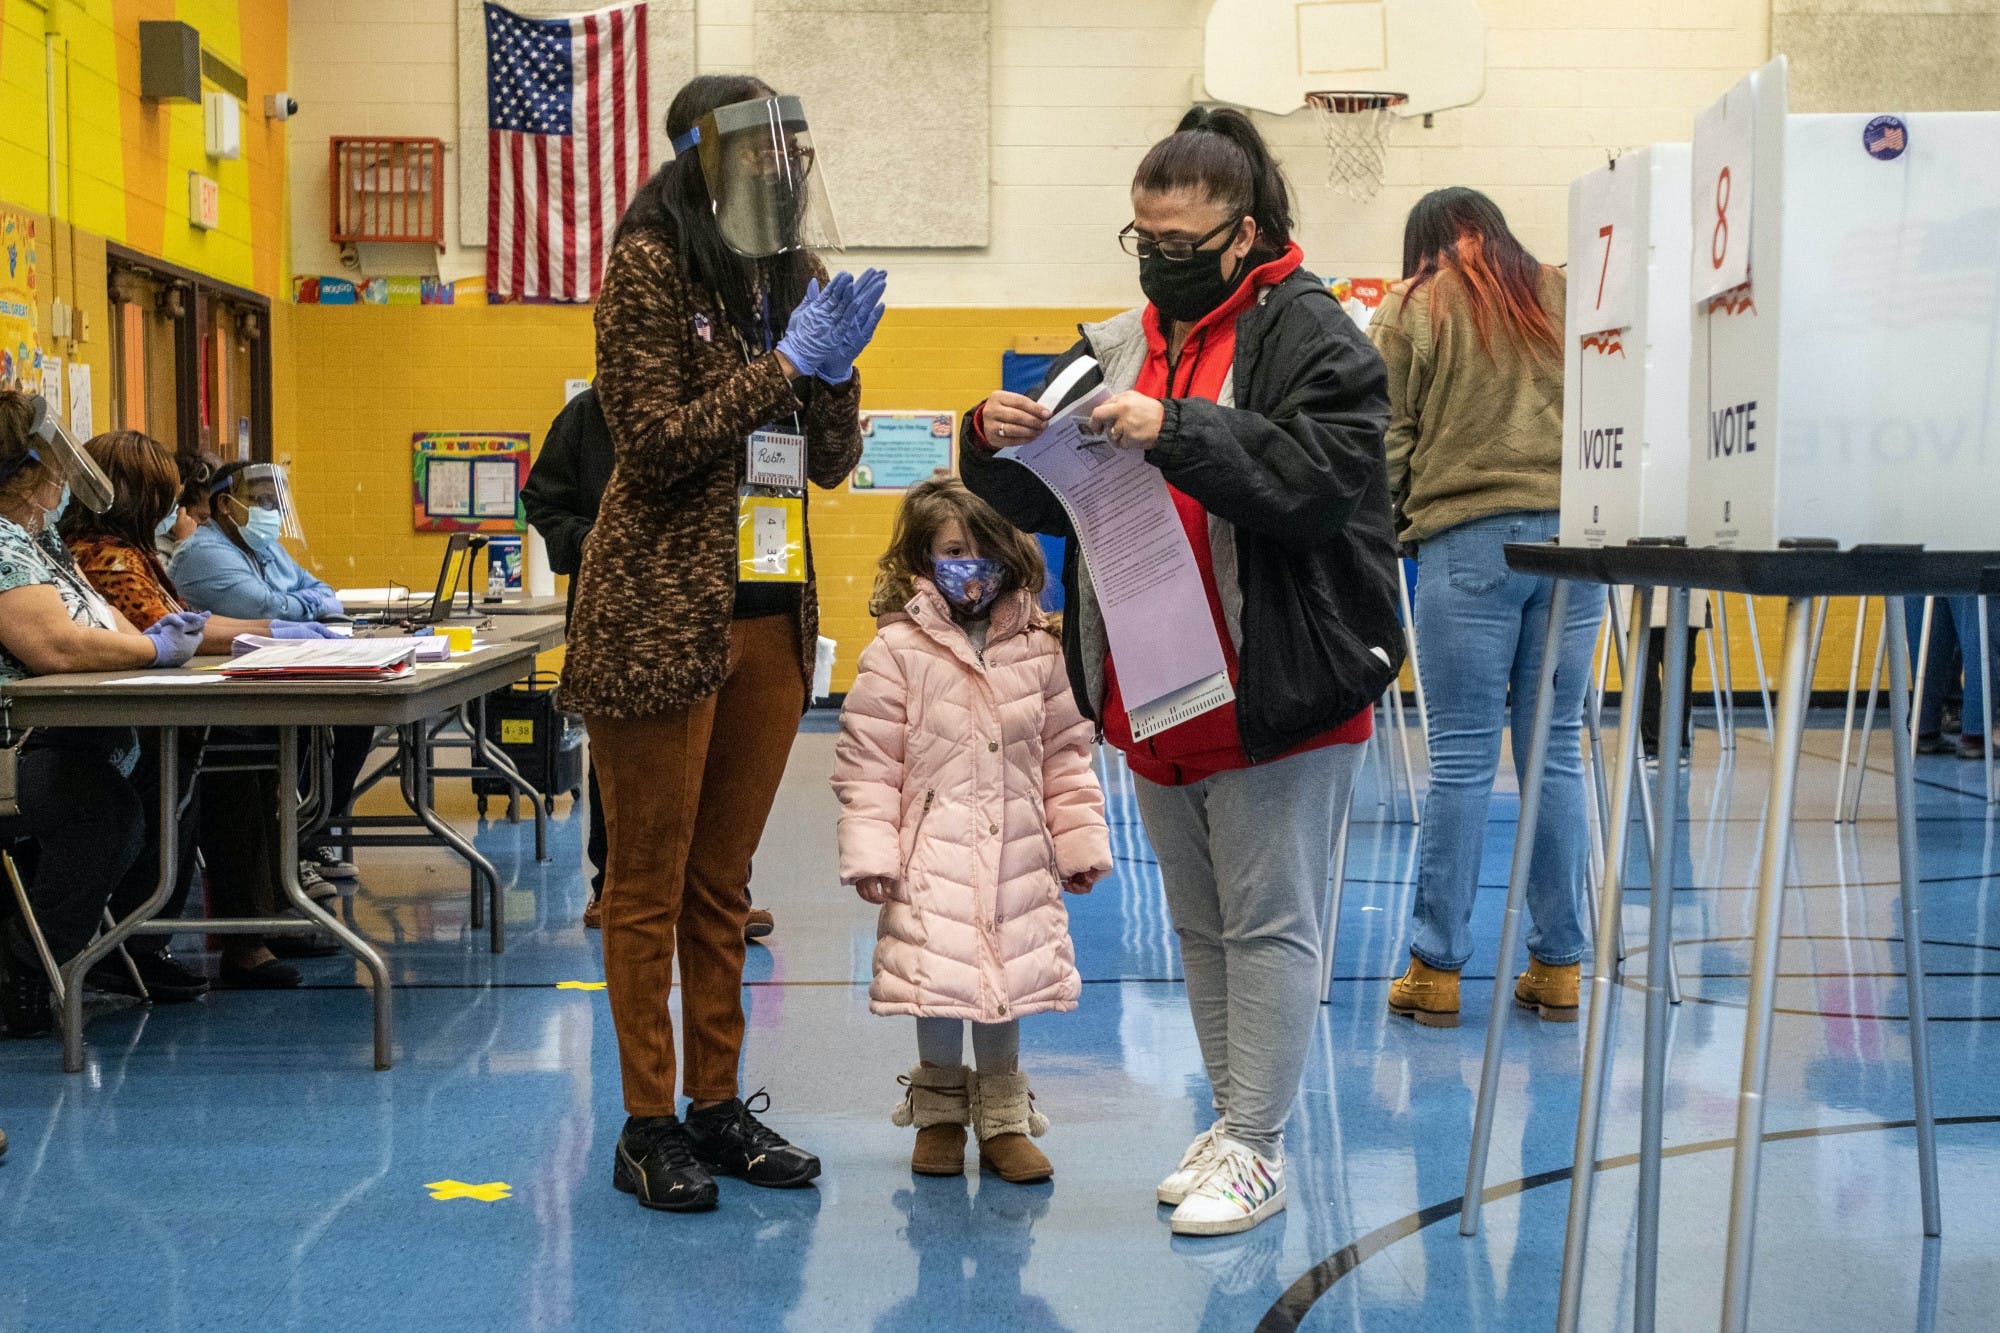 Two adults and a child stand in a polling center wearing face masks.